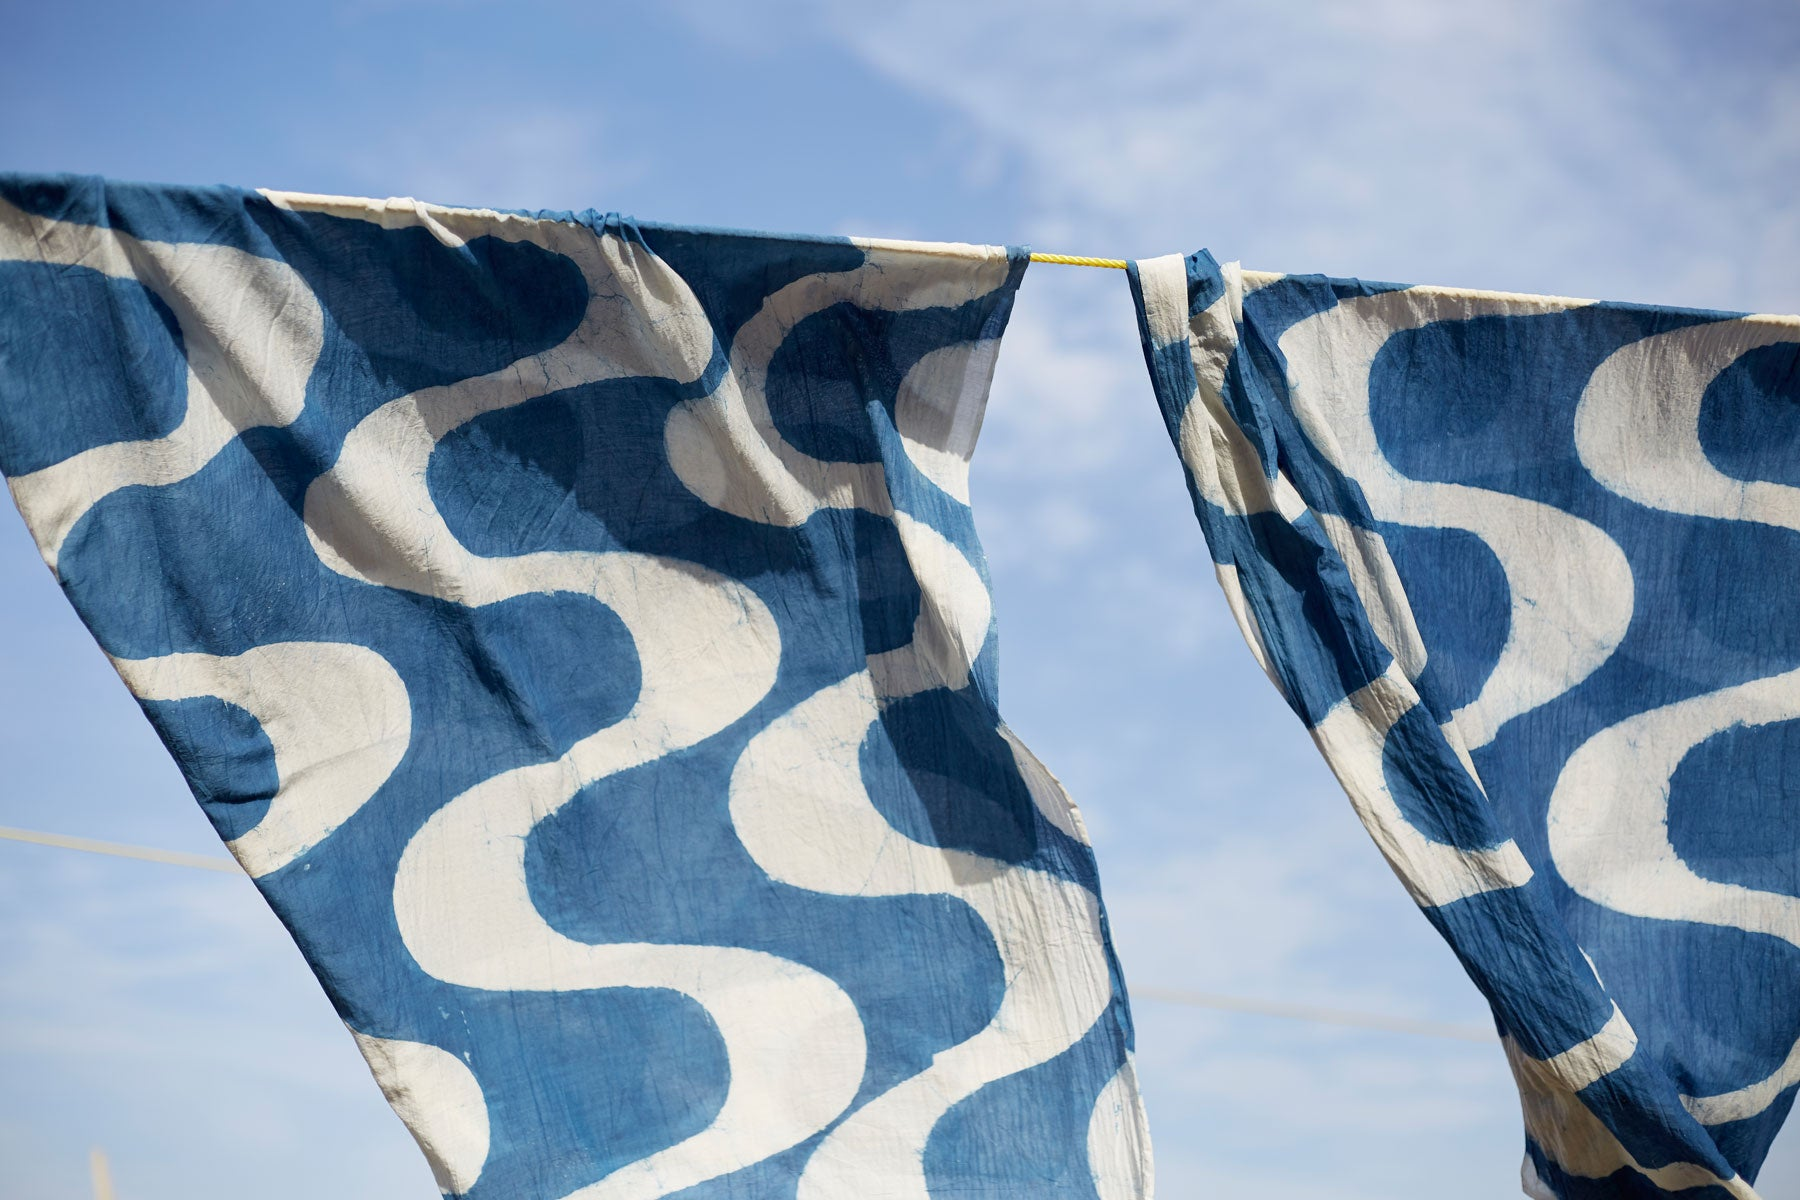 Hand block printed indigo dyed textiles drying outside